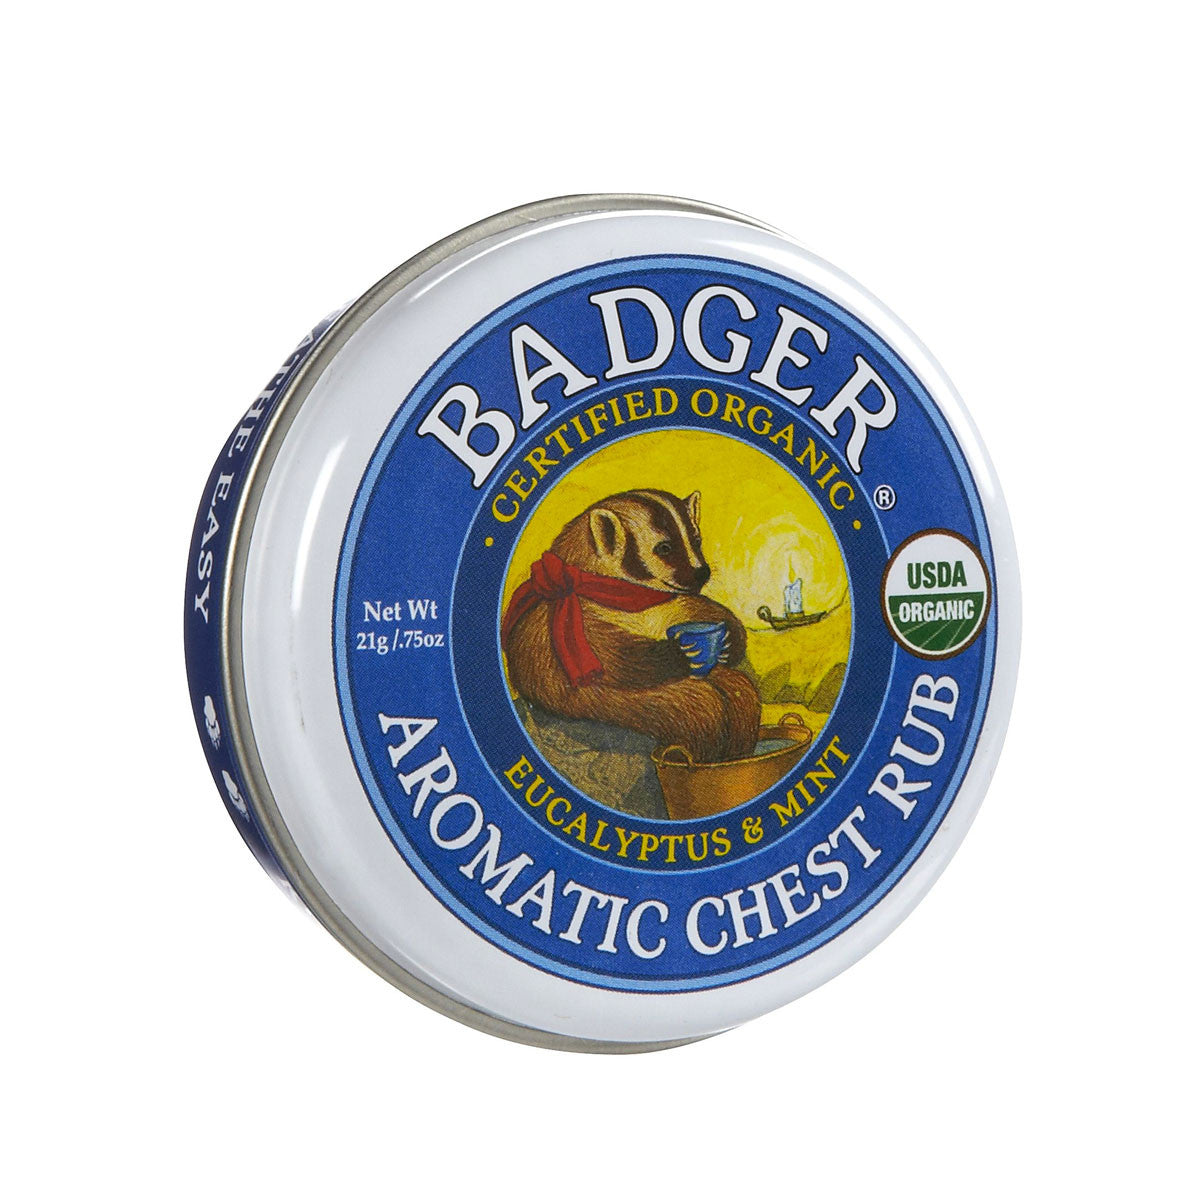 Badger Winter Wonder Aromatic Chest Rub Badger Vapour Rubs at Little Earth Nest Eco Shop